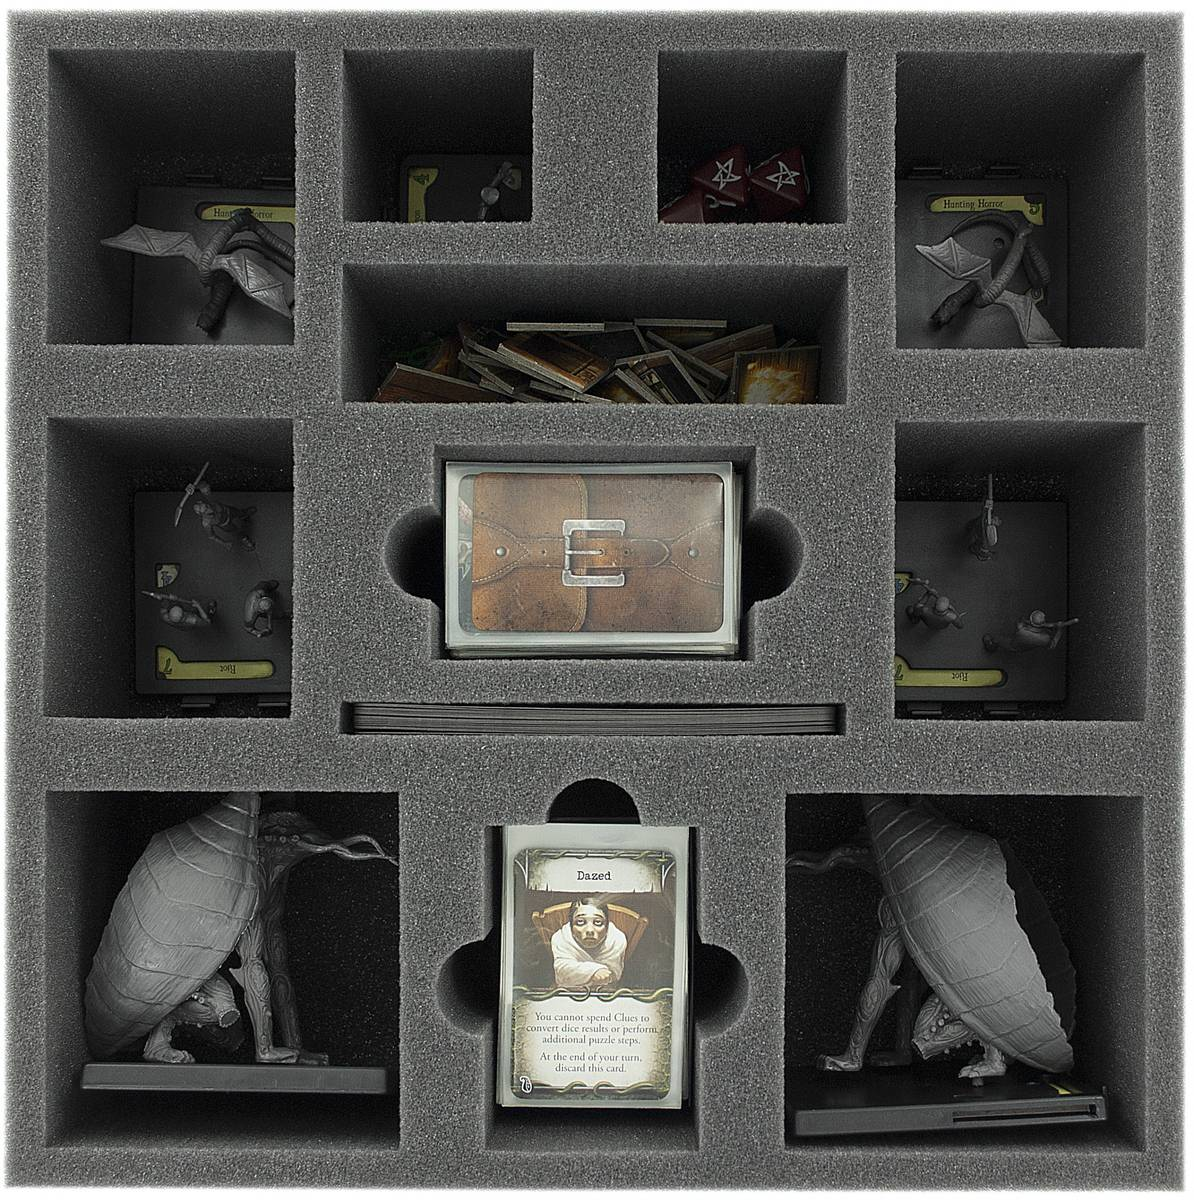 AFFQ090BO 90 mm (3.54 inches) foam tray for Mansions of Madness - 2nd Edition